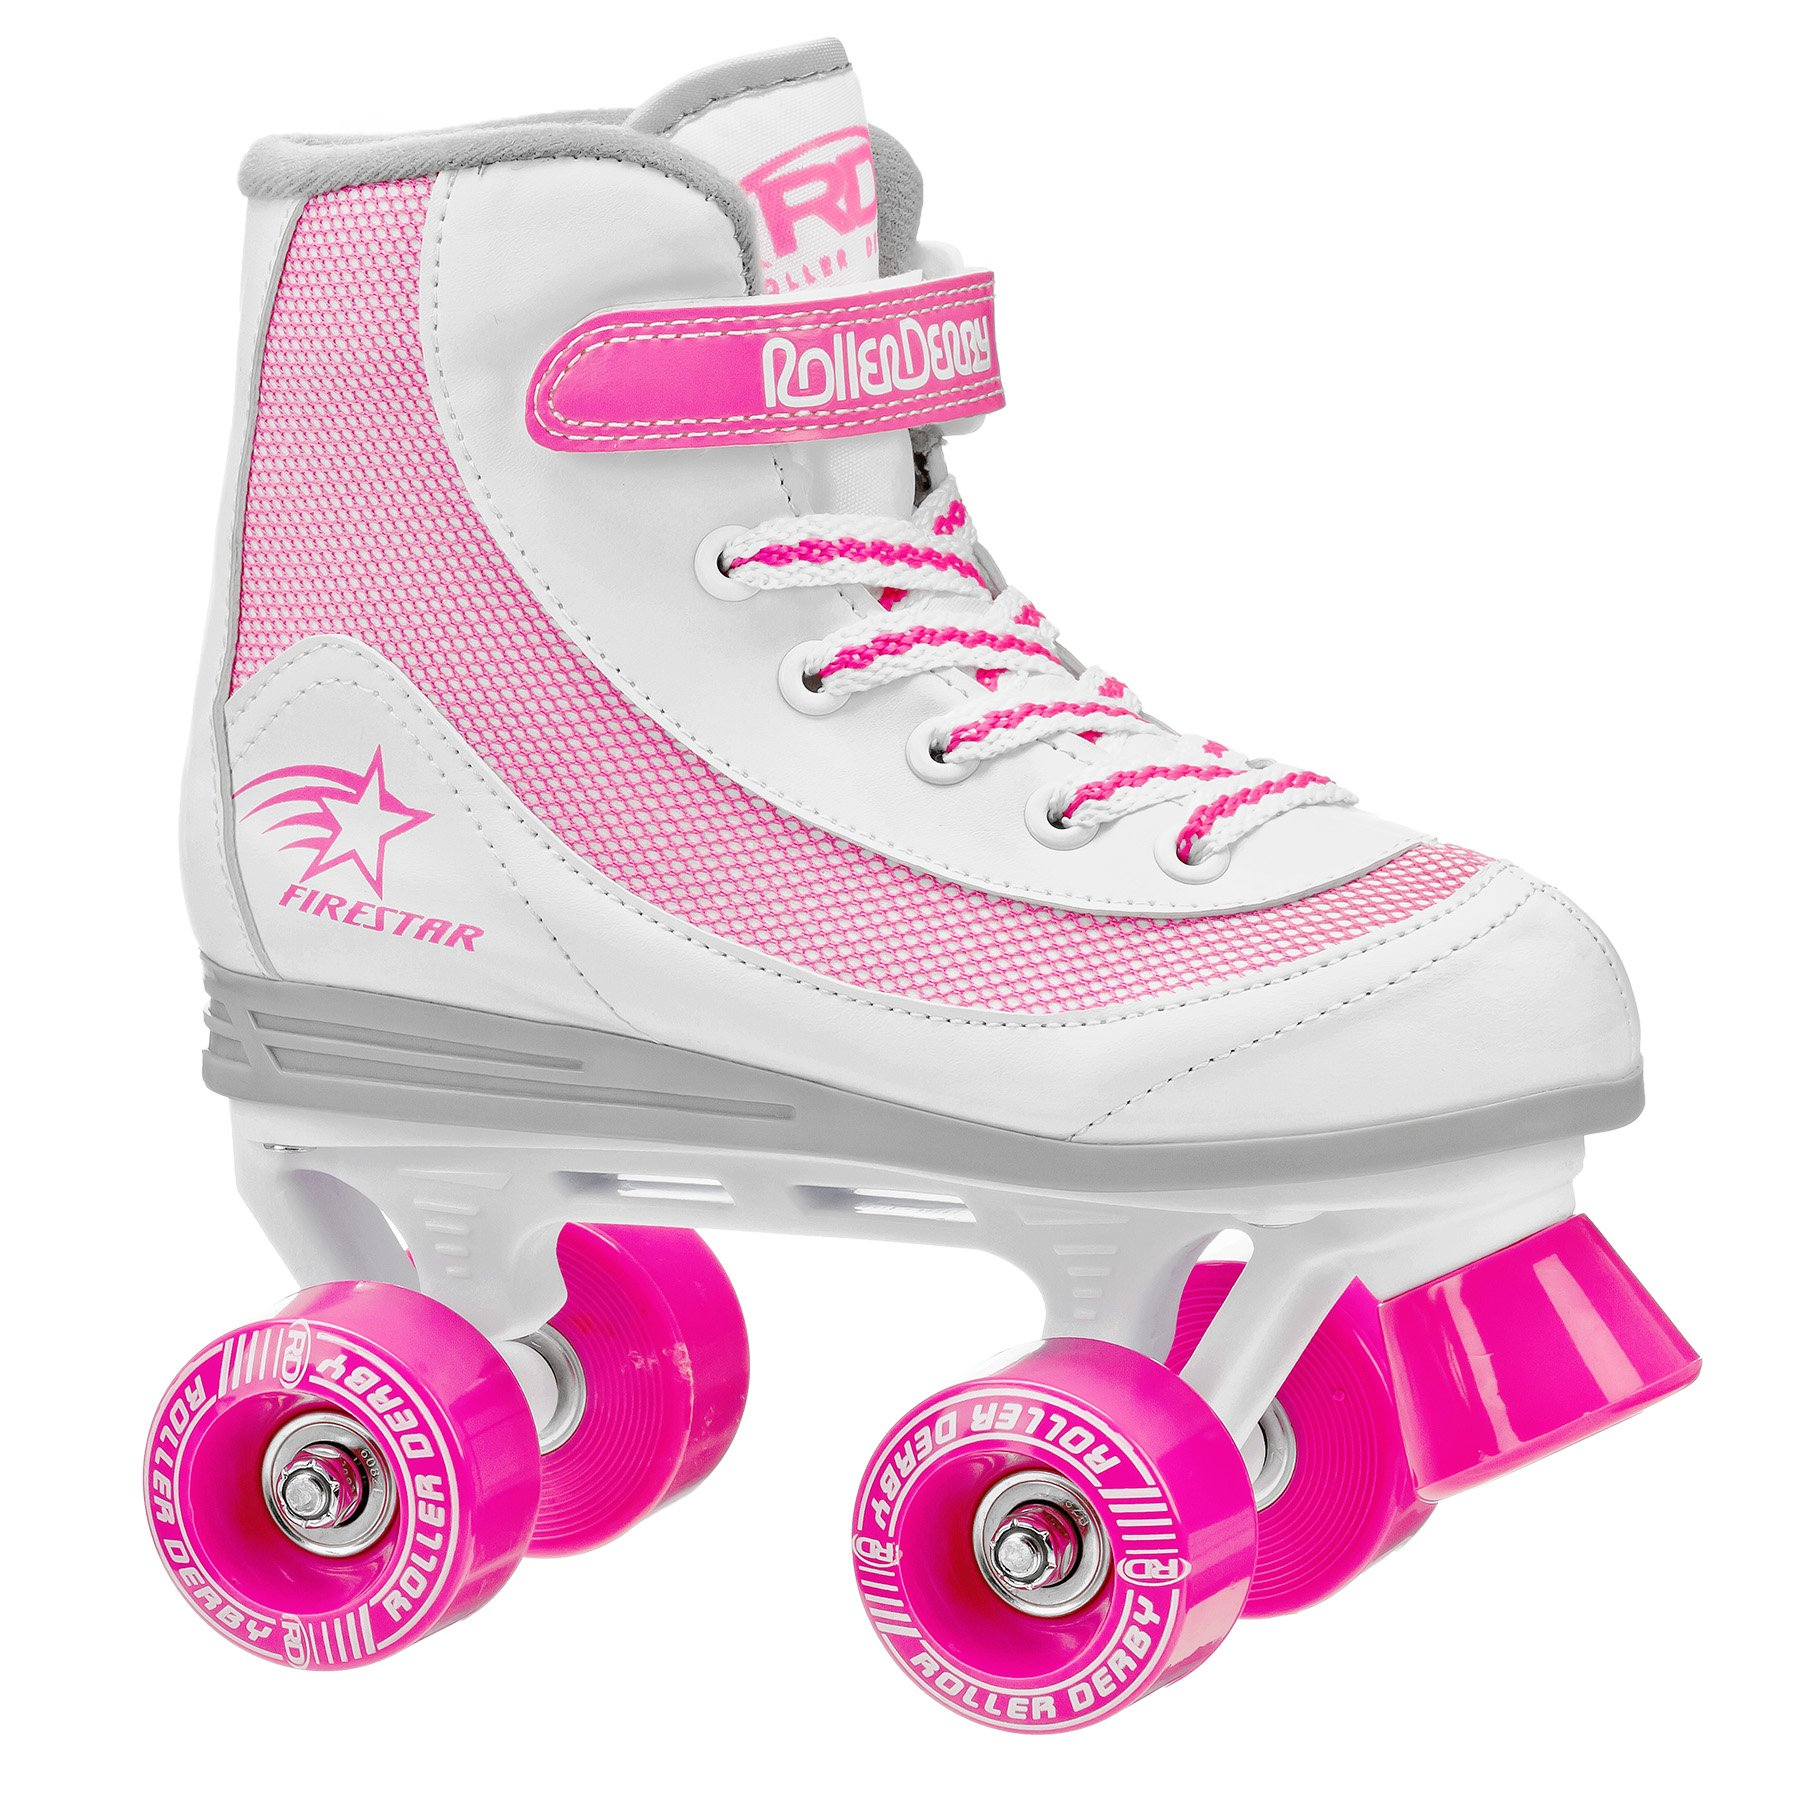 Best rated in speed. Free clipart of boy wobbling on roller skates